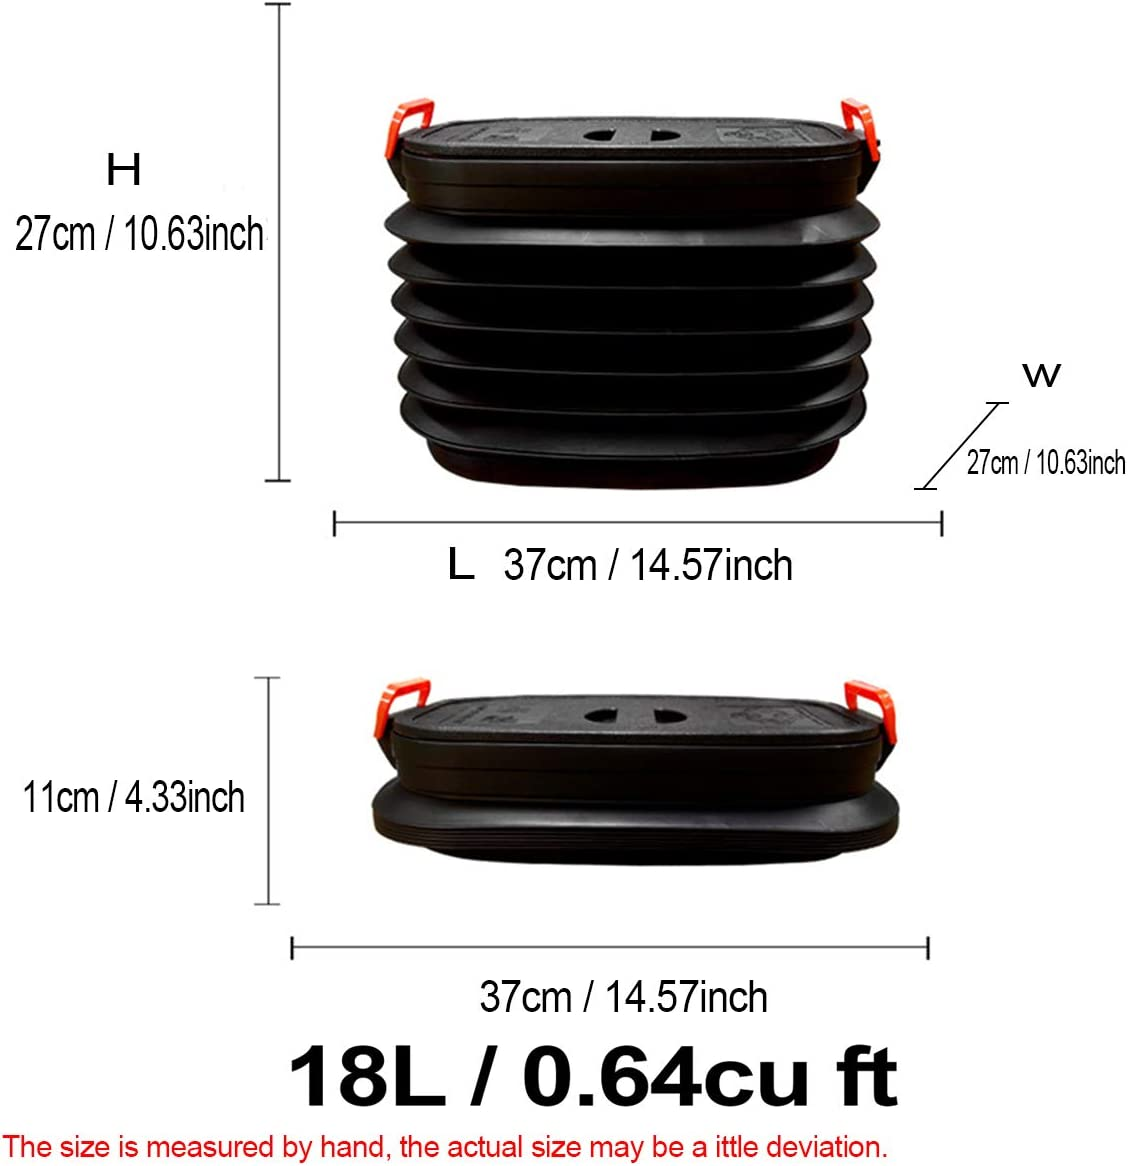 IYOYI Collapsible Bucket Car Organizer Foldable Outdoor Pail Storage Bag with Lid Handle for Fishing Camping Outdoor Traveling Hiking